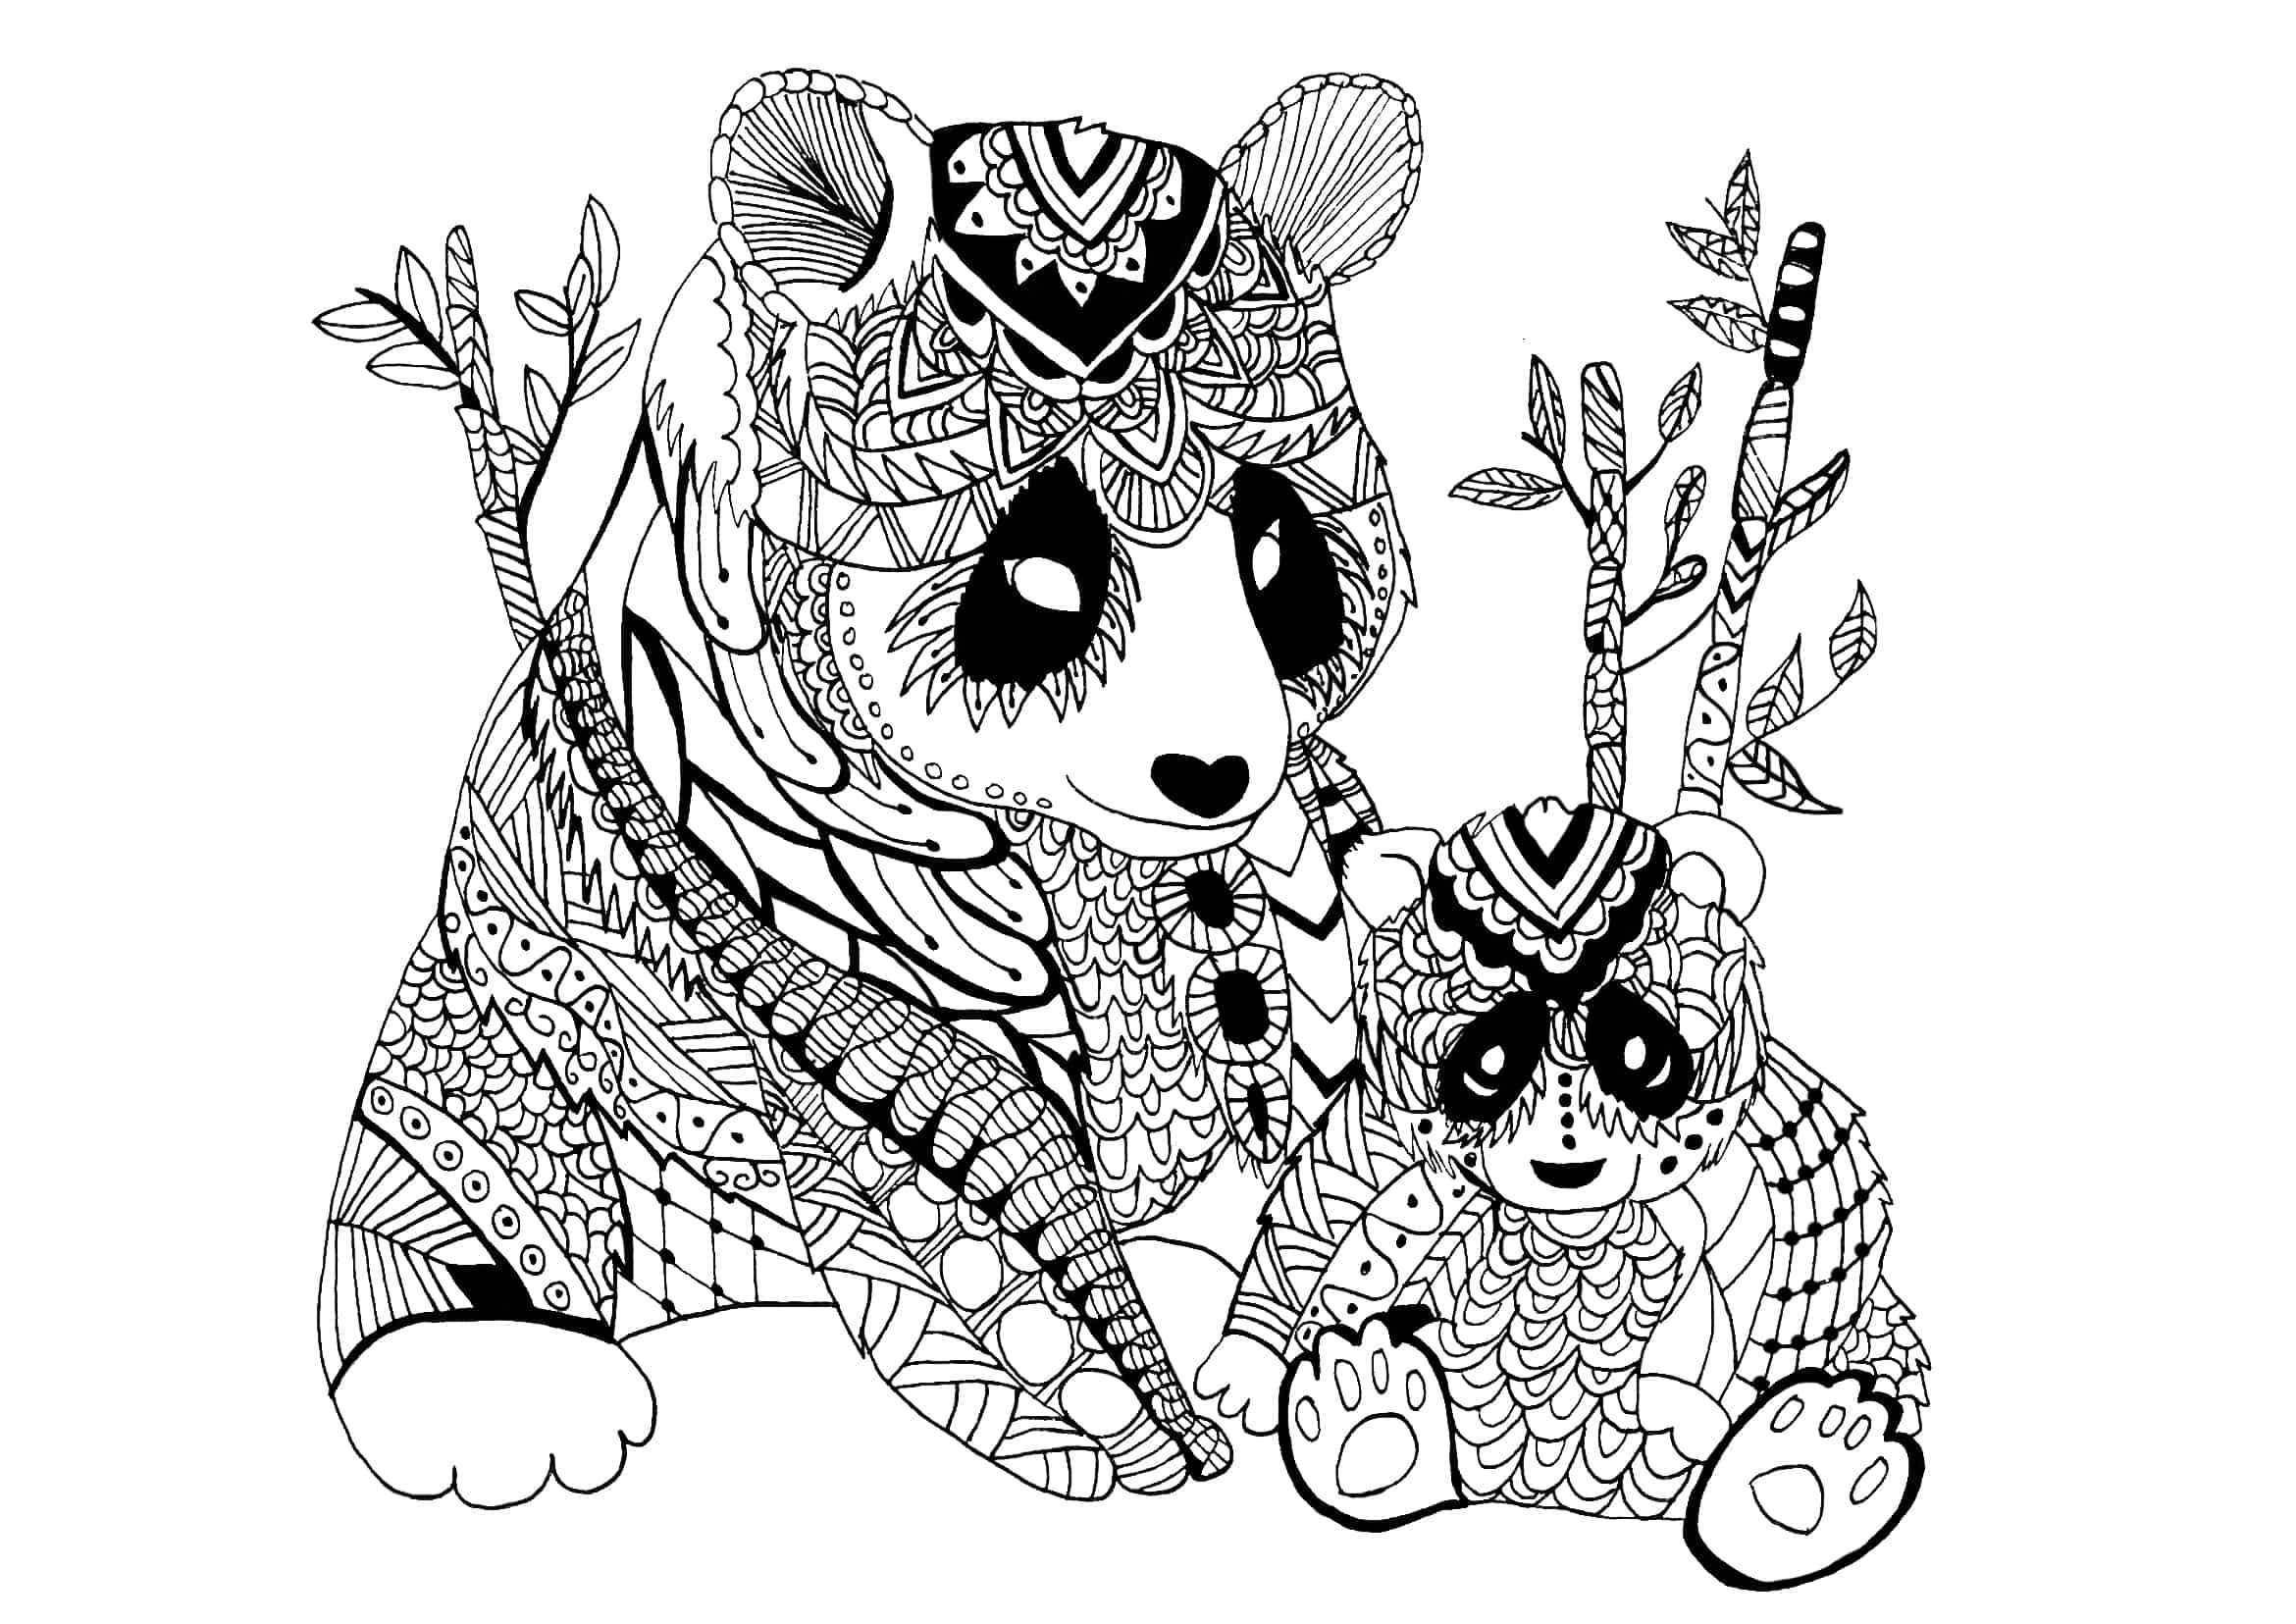 red panda face coloring page panda bear vector free download best panda bear vector page panda coloring face red